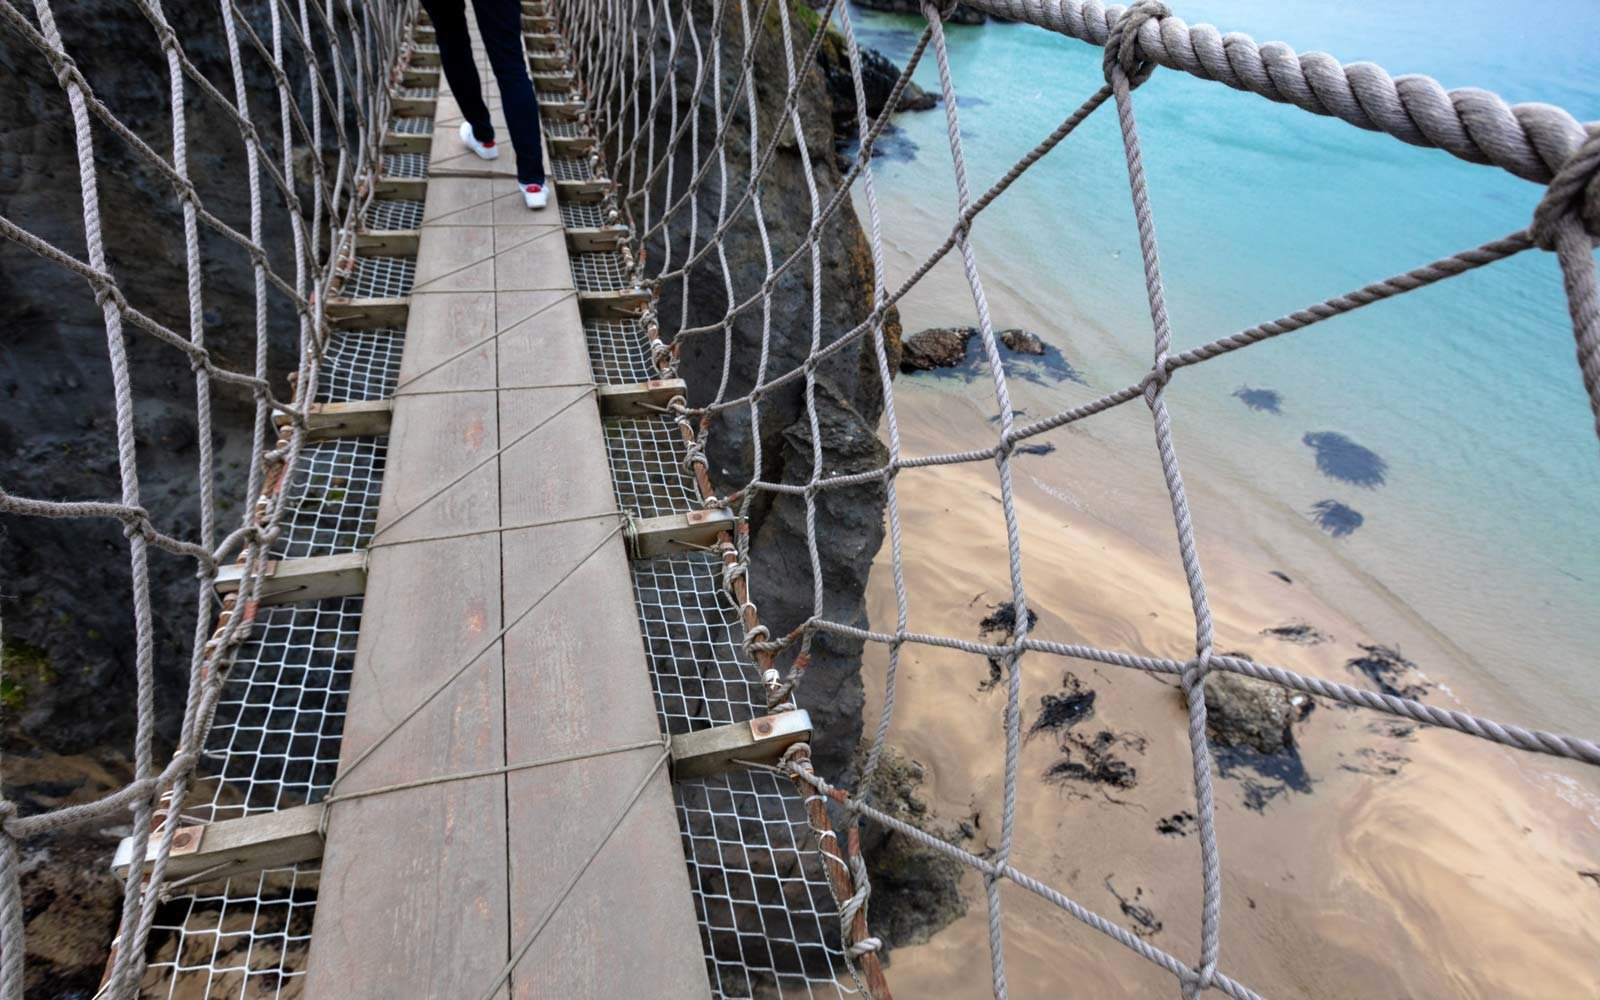 Carrick-a-Rede bridge now requires tickets